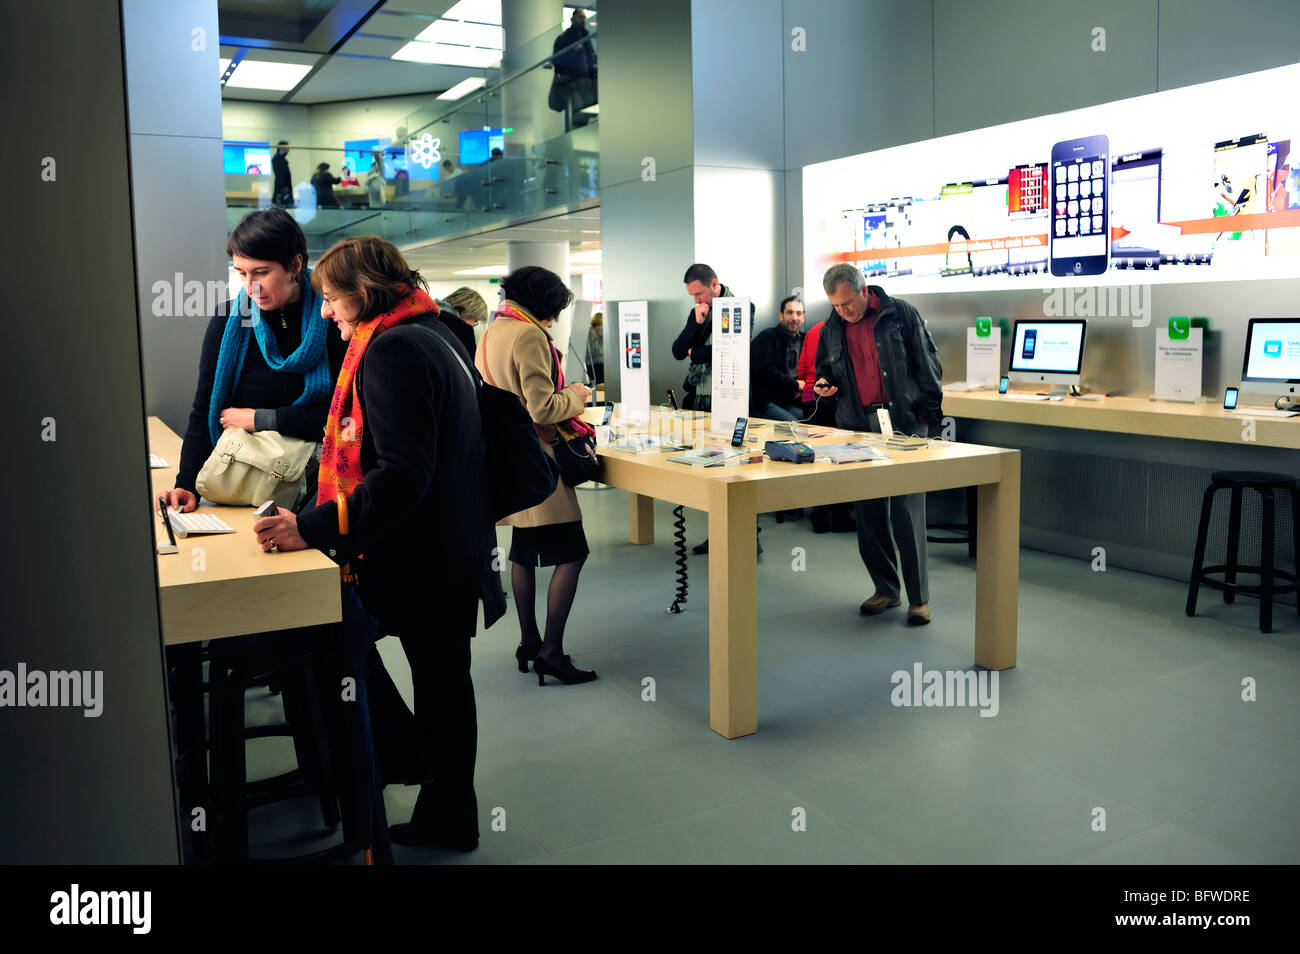 Paris France French Shopping Center General View Inside Apple Store People Looking At I Phones Pods